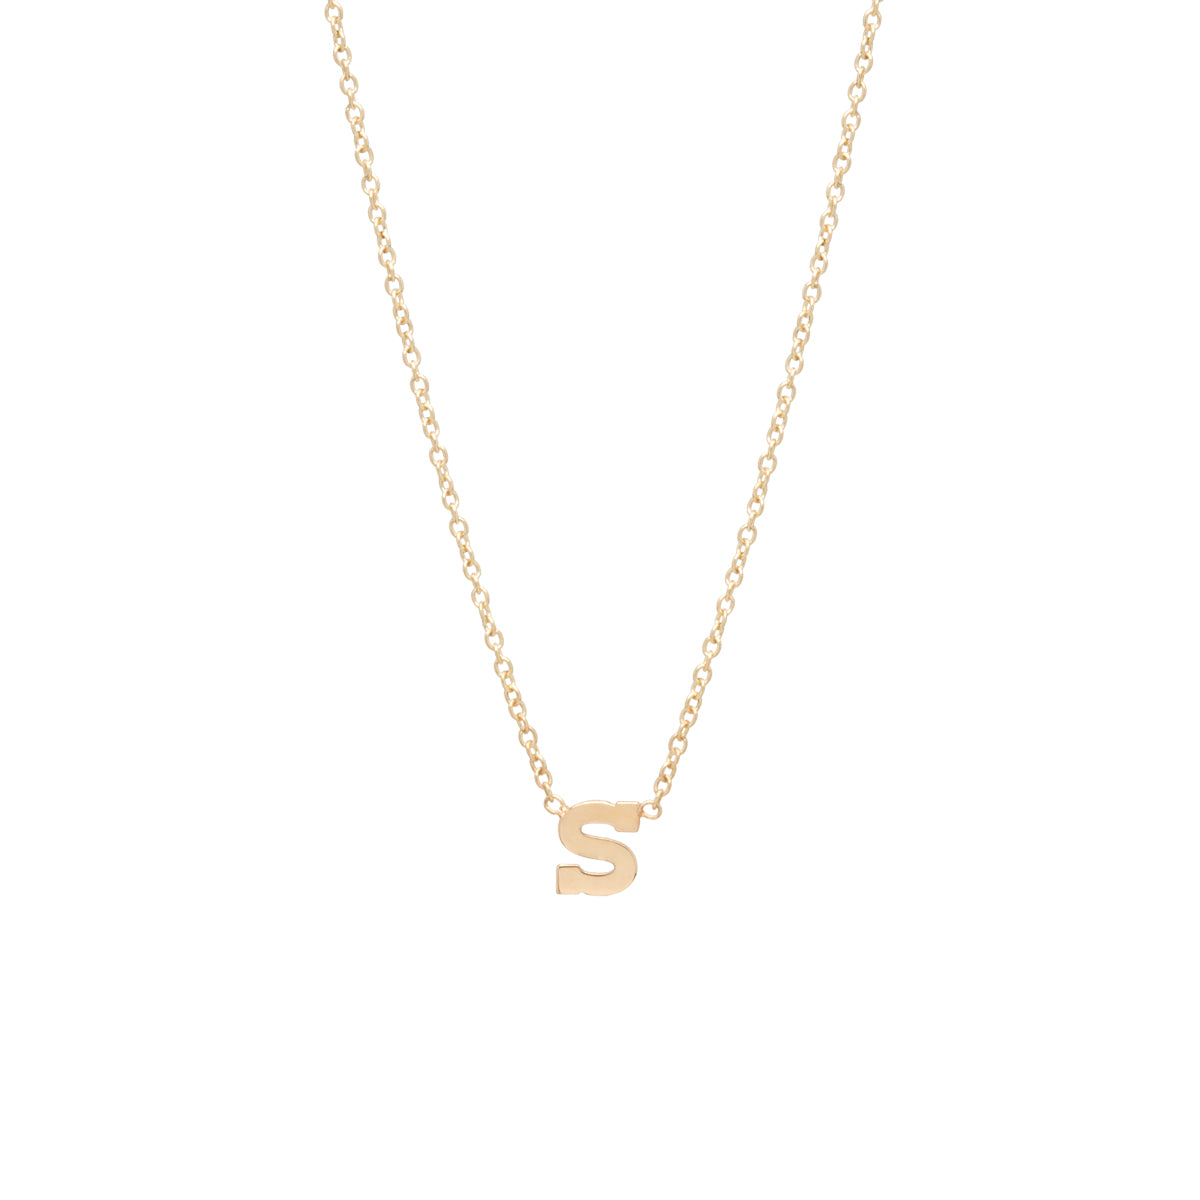 Zoë Chicco – Zoë Chicco 14kt Gold Letter Necklace